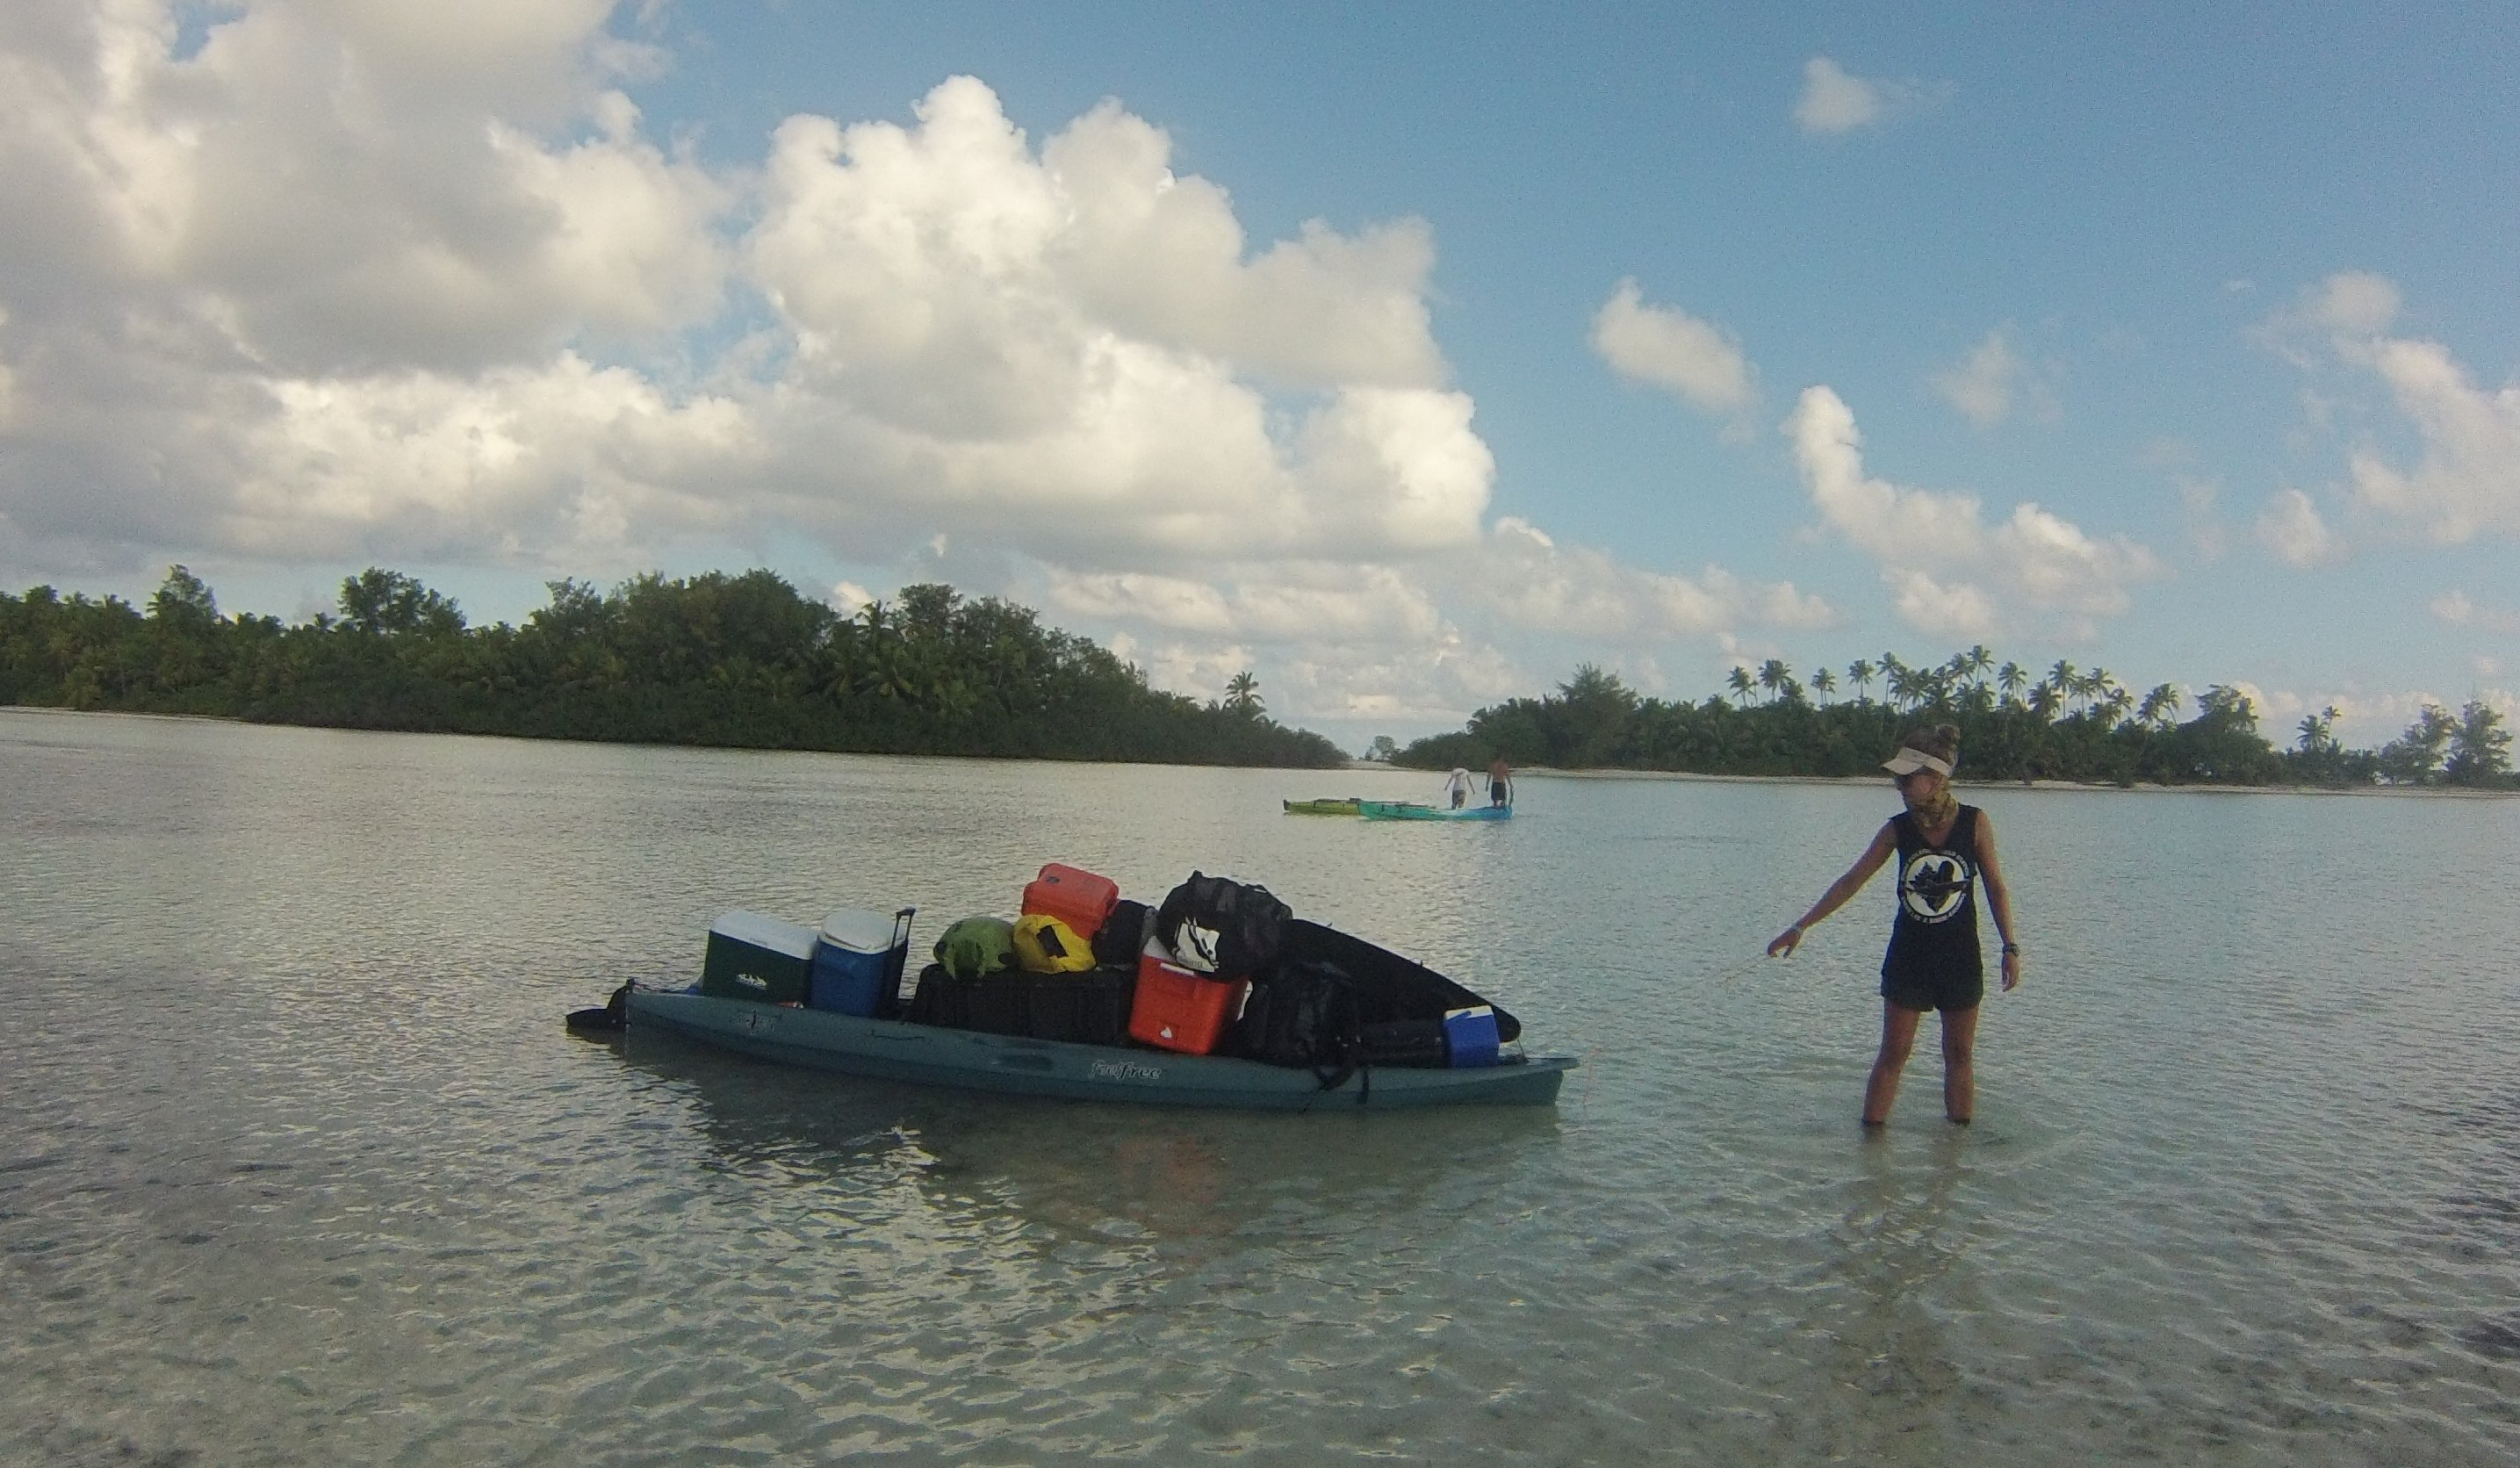 Ornella with a fully loaded kayak carrying field equipment, food, supplies and drinking water. Photo by Chantel Elston